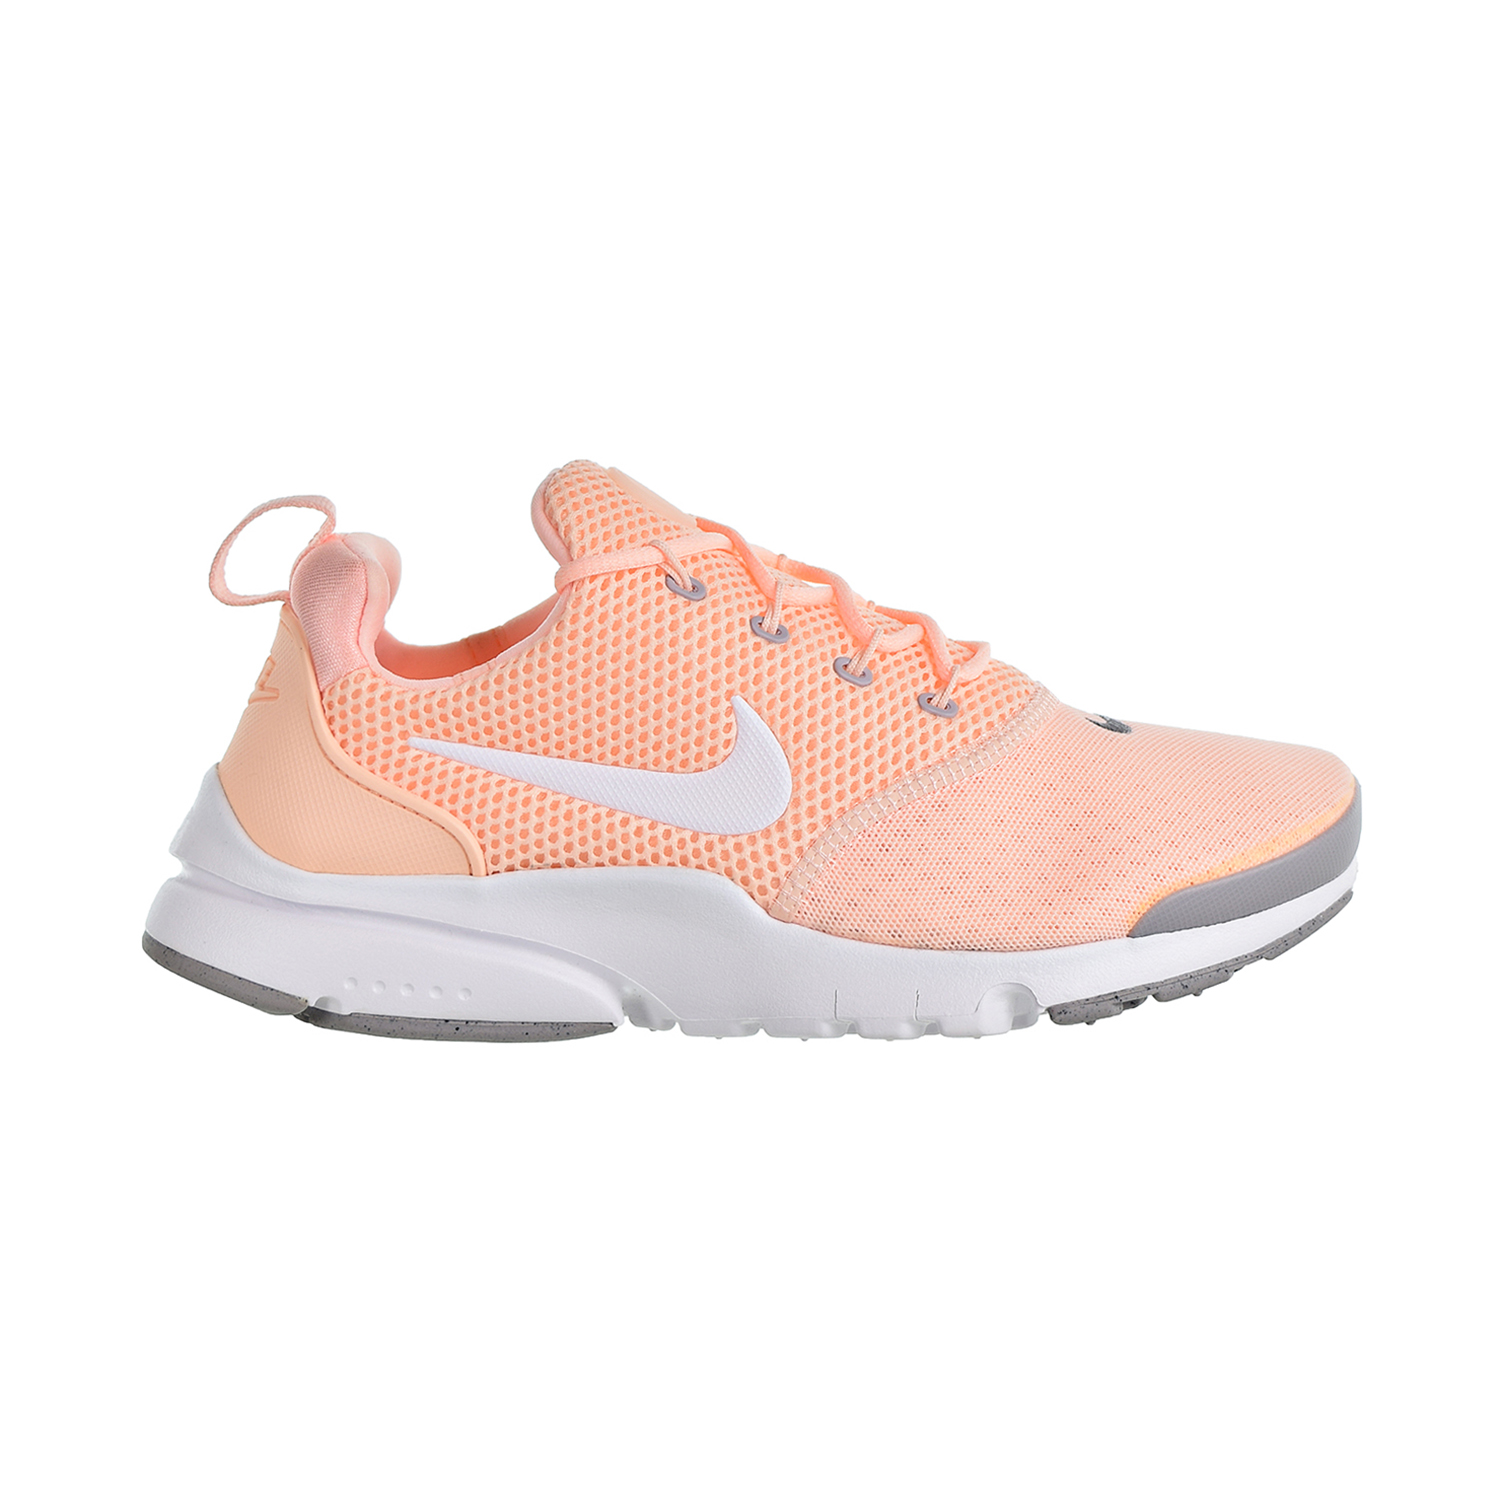 Details about Nike Presto Fly Big Kids' Shoes Crimson Tint White 913967 800